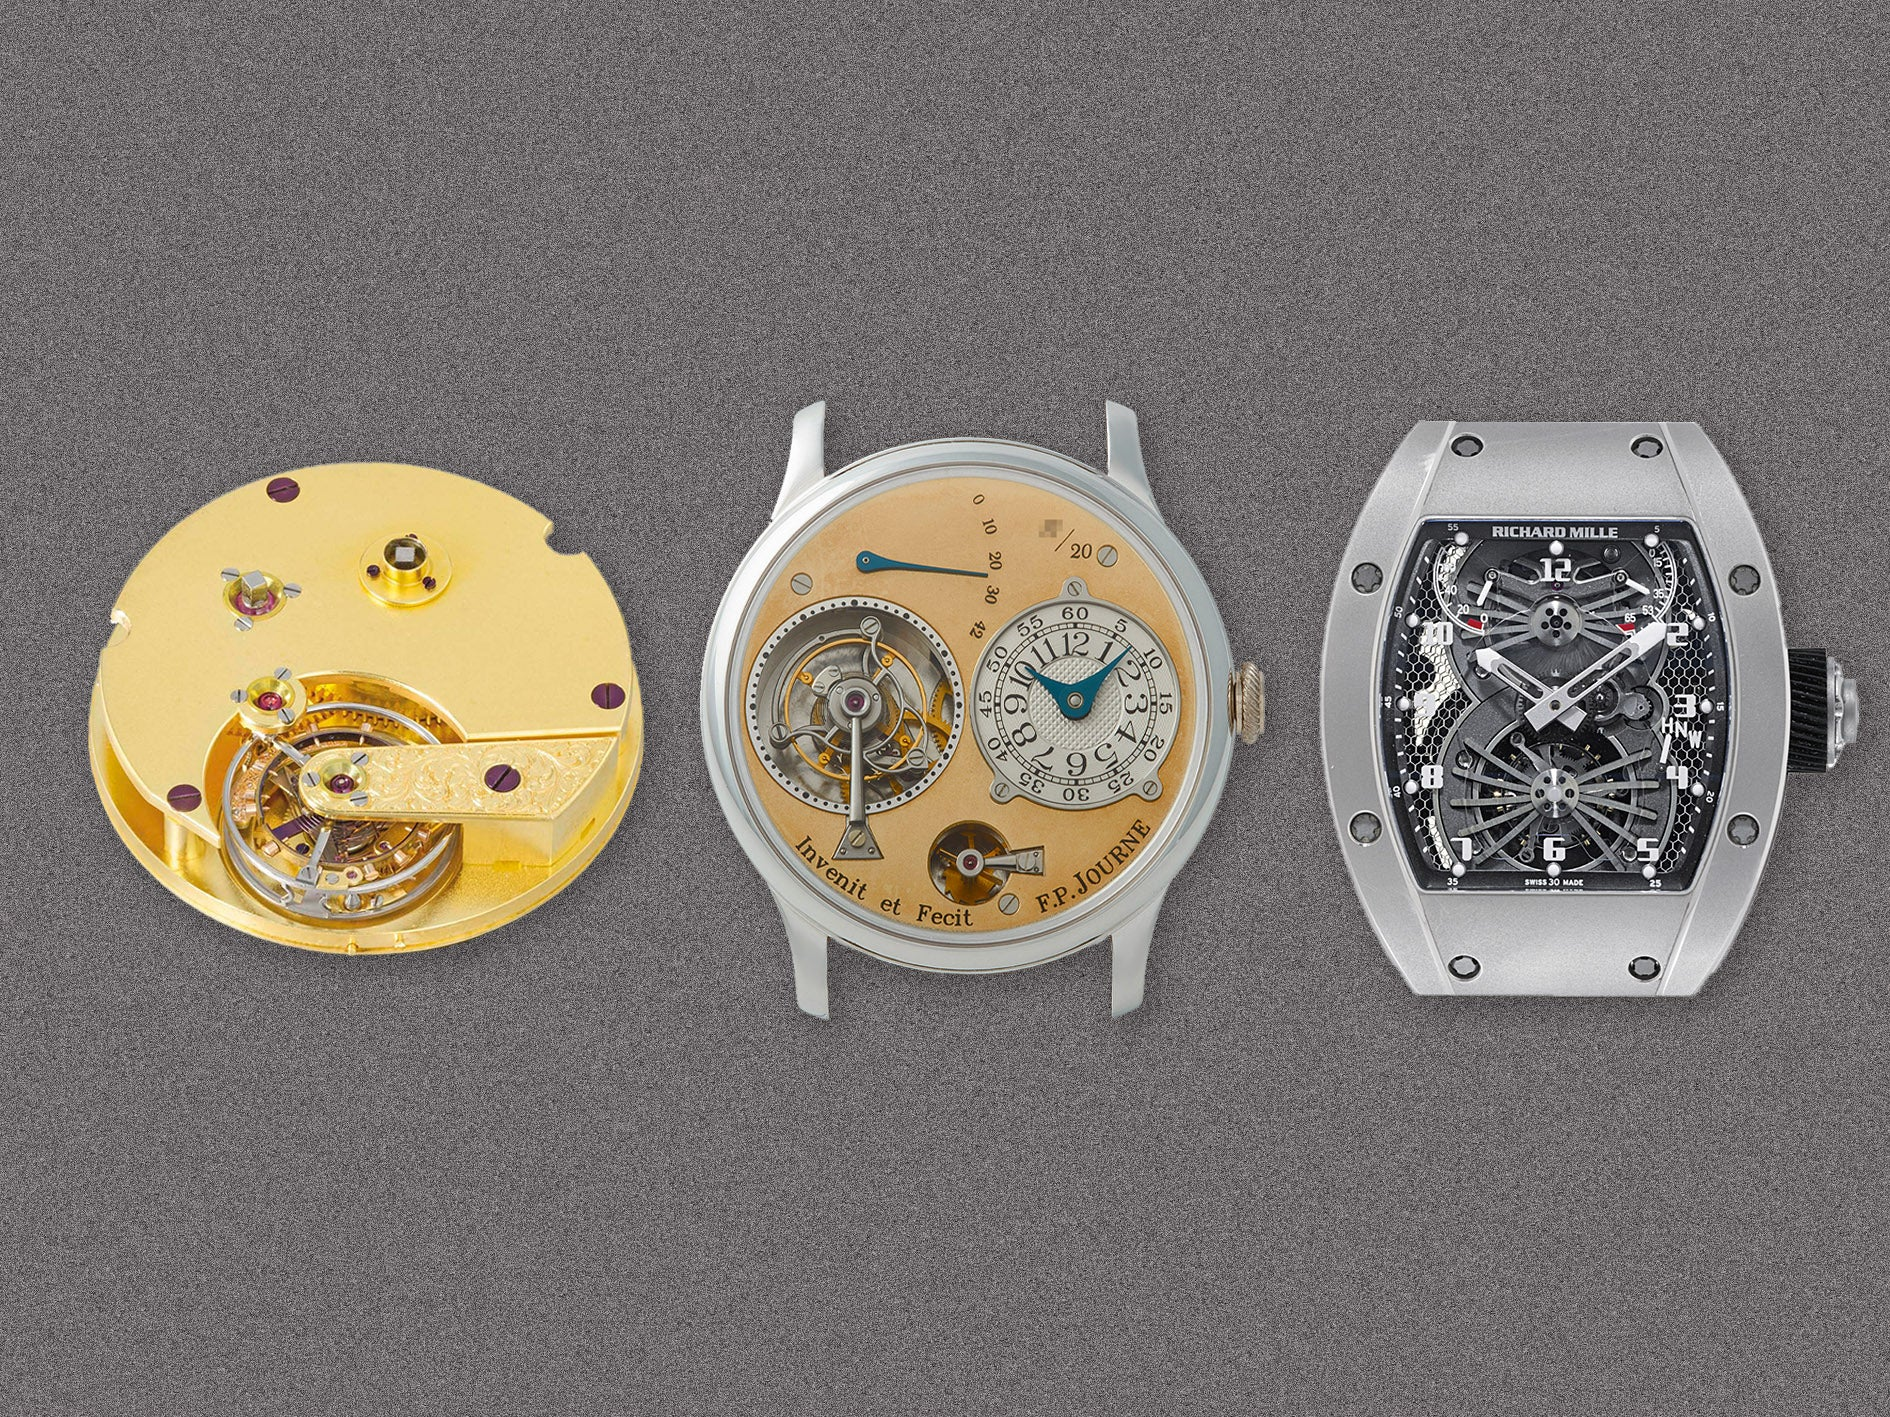 Three tourbillon watches showing the progression of the complication over time